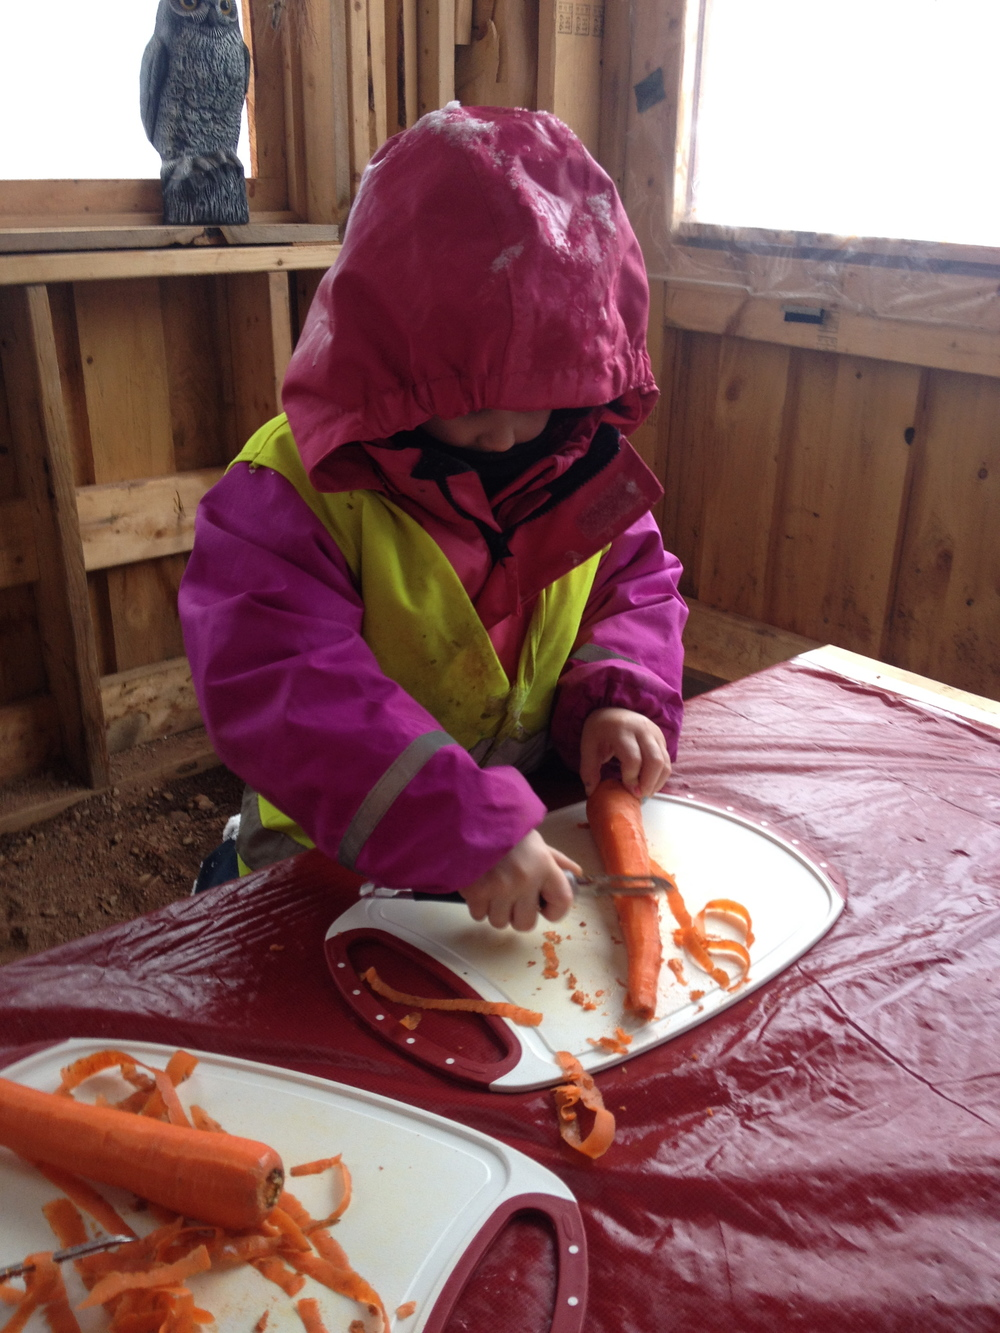 Avery used very good concentration and practiced safe behaviours while peeling her carrot with a vegetable peeler.